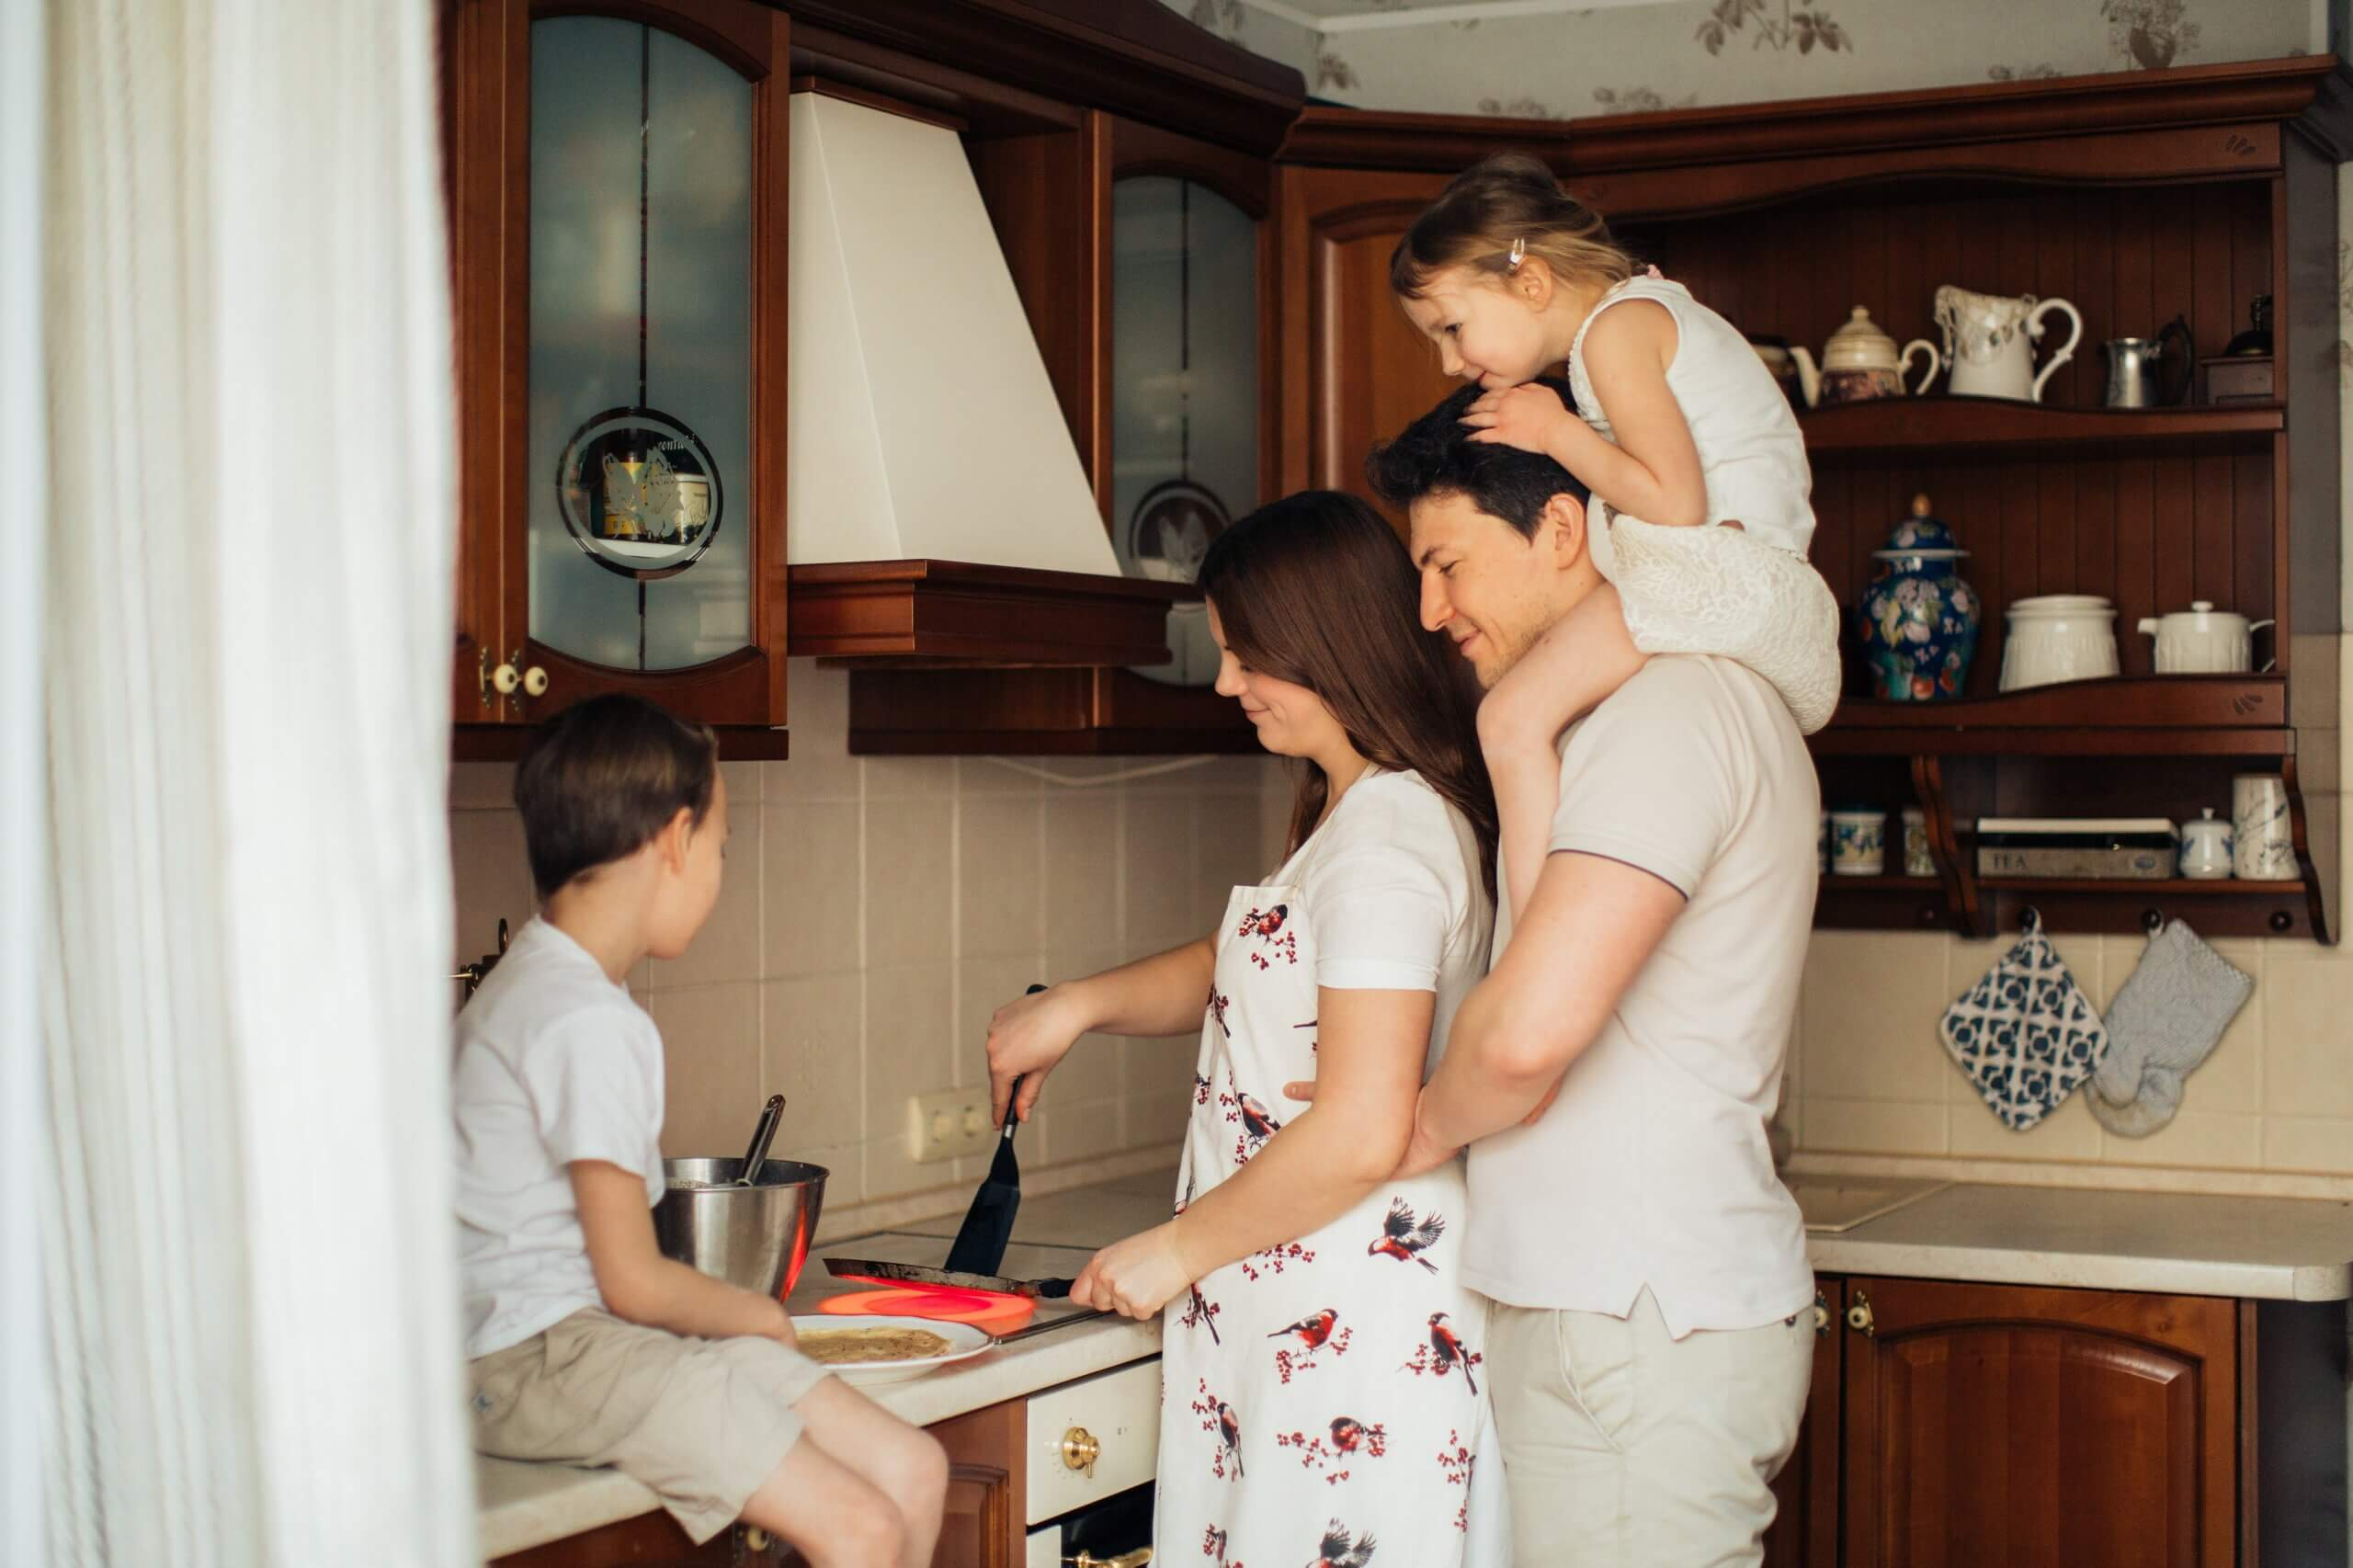 Quickly Locksmith Guide: How to Teach Your Kids About Home Safety